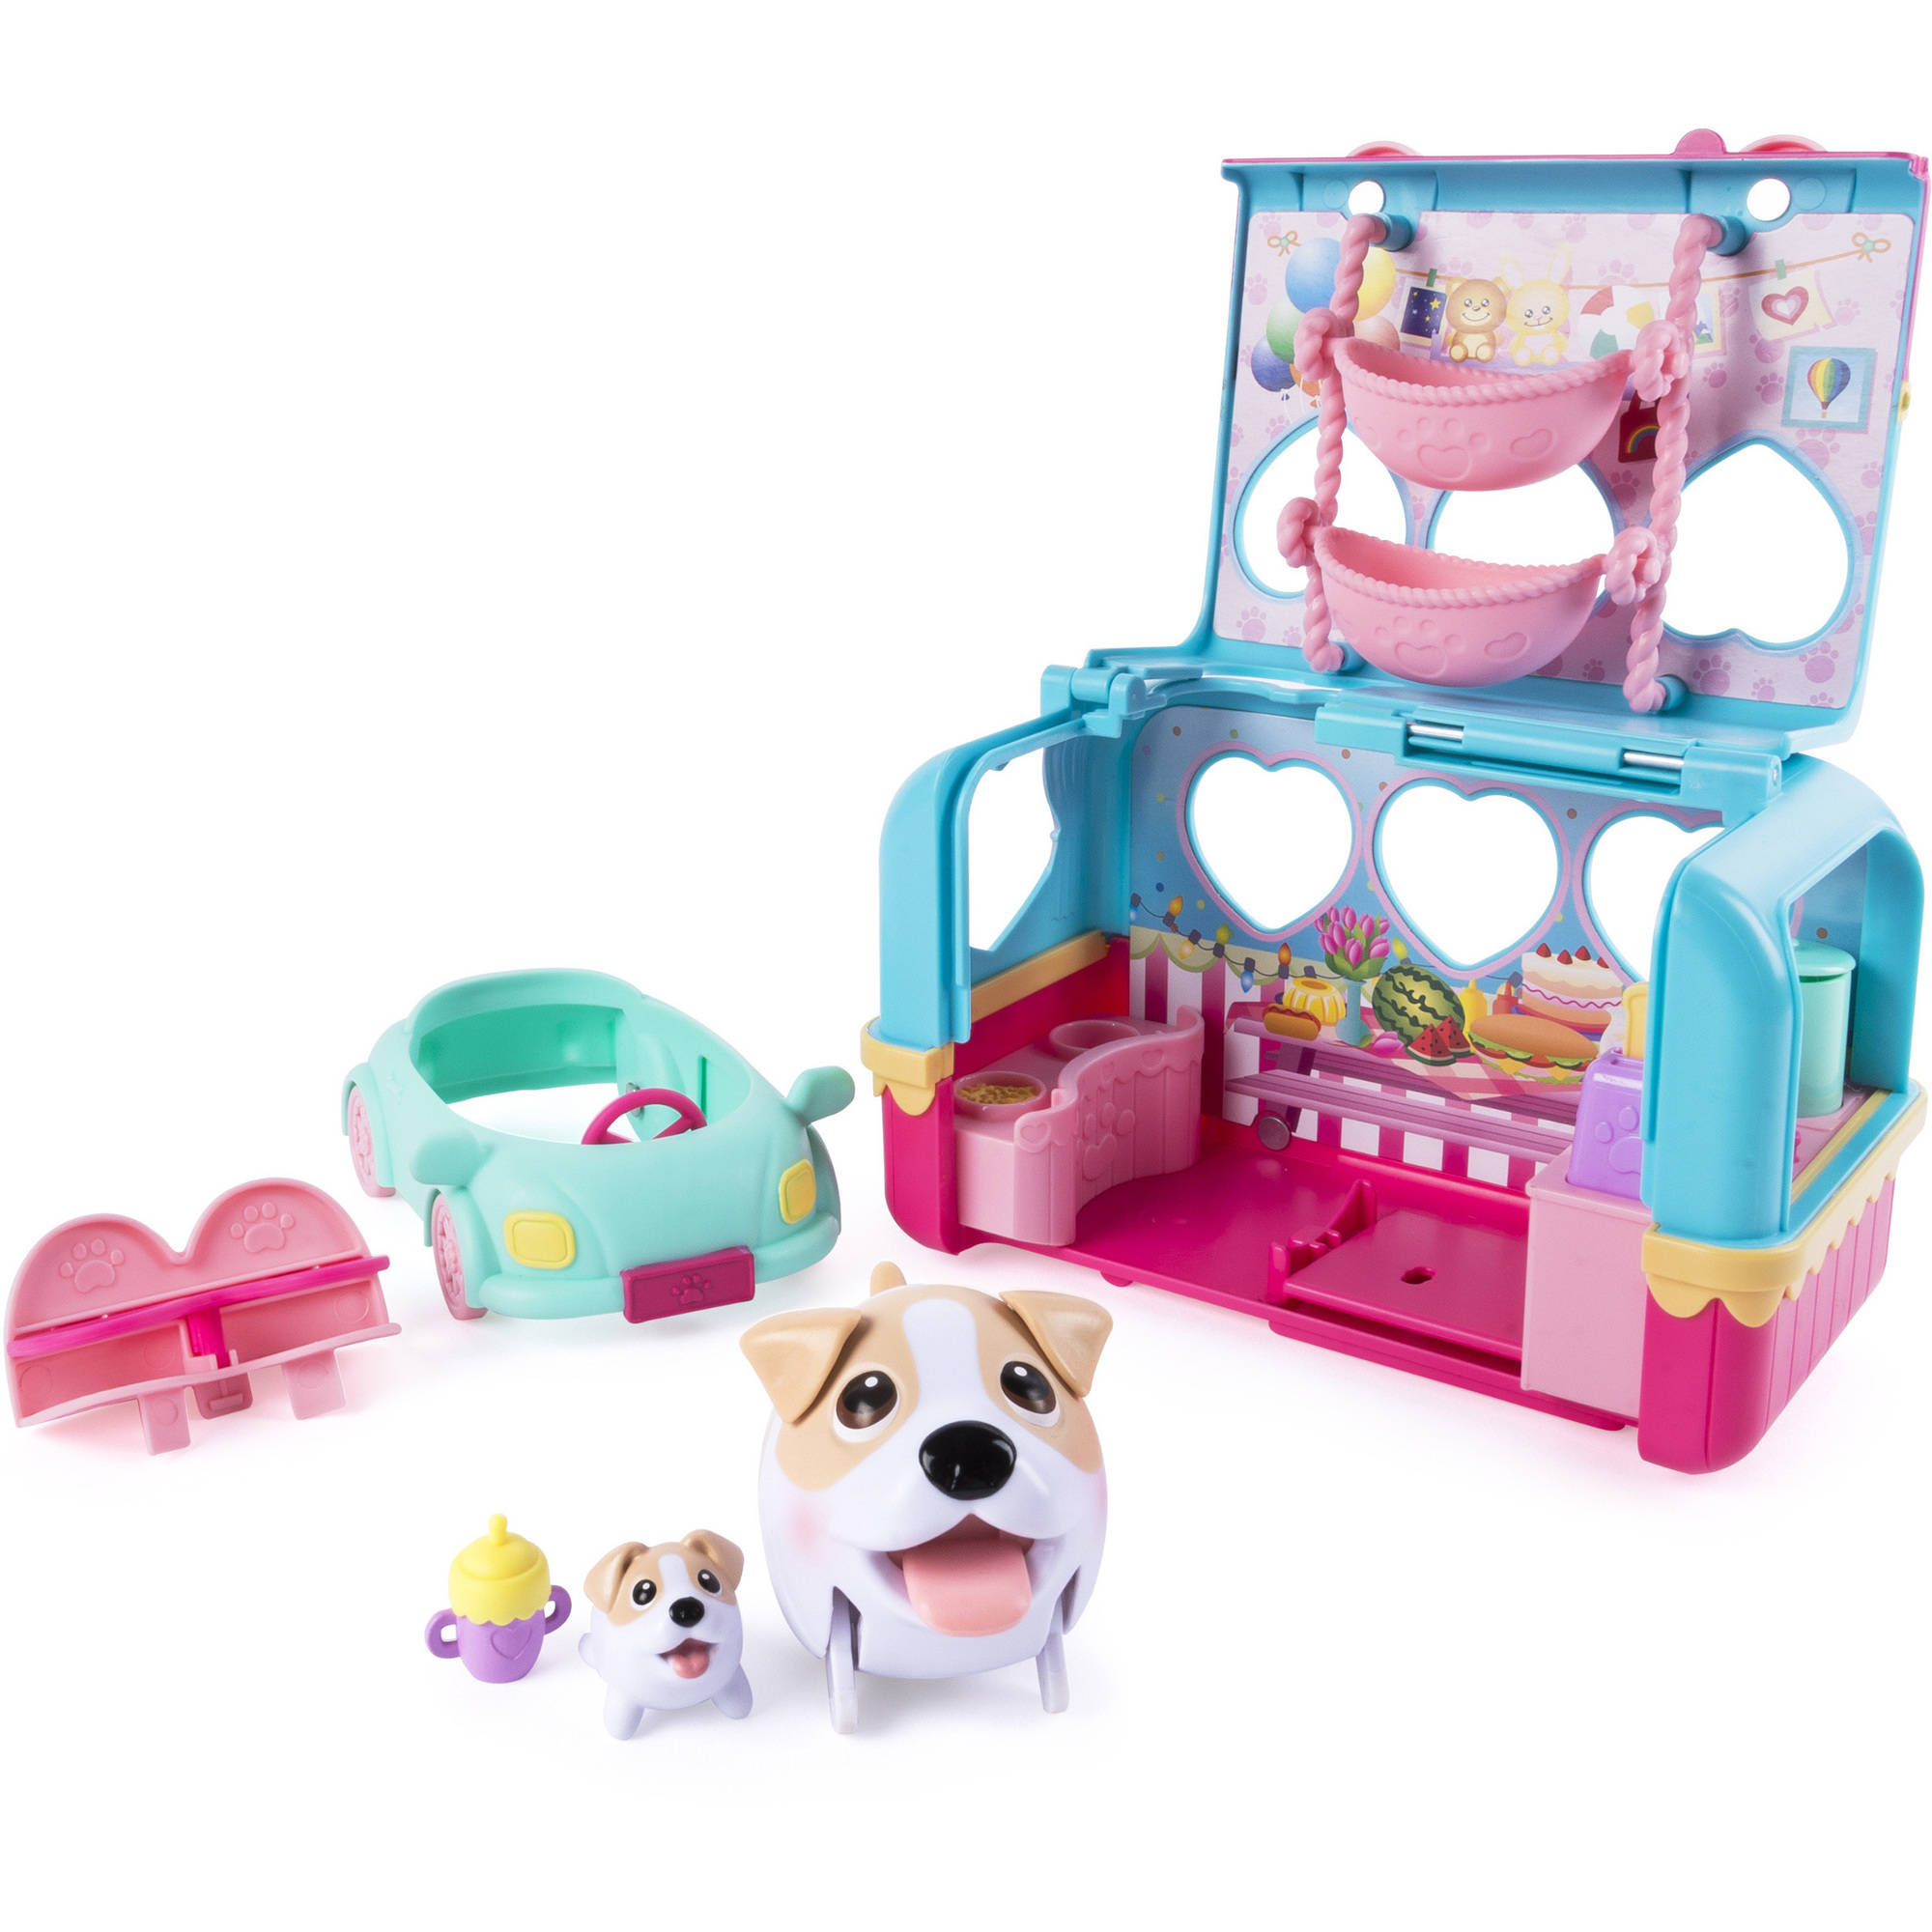 Chubby Puppies & Friends Vacation Camper Playset Jack Russell